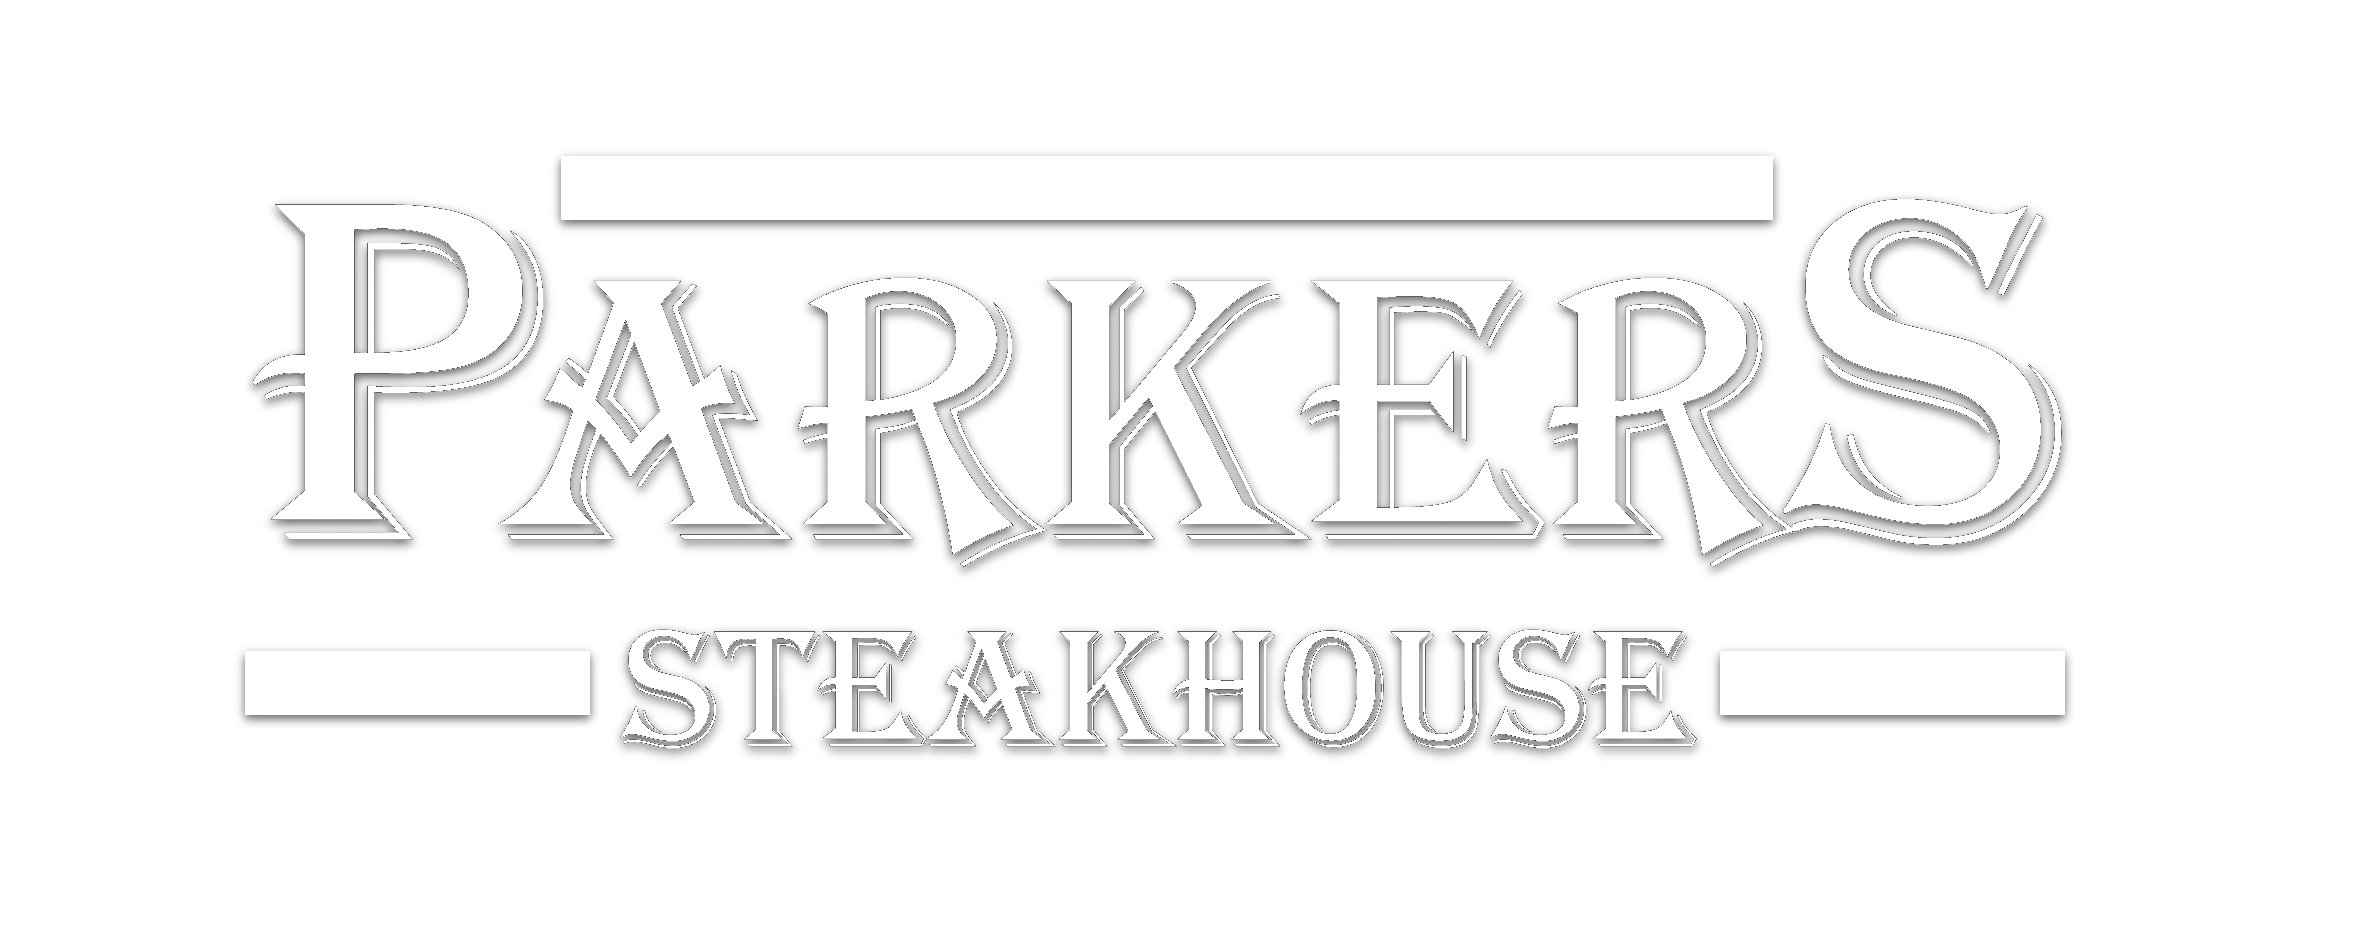 Parkers Steakhouse